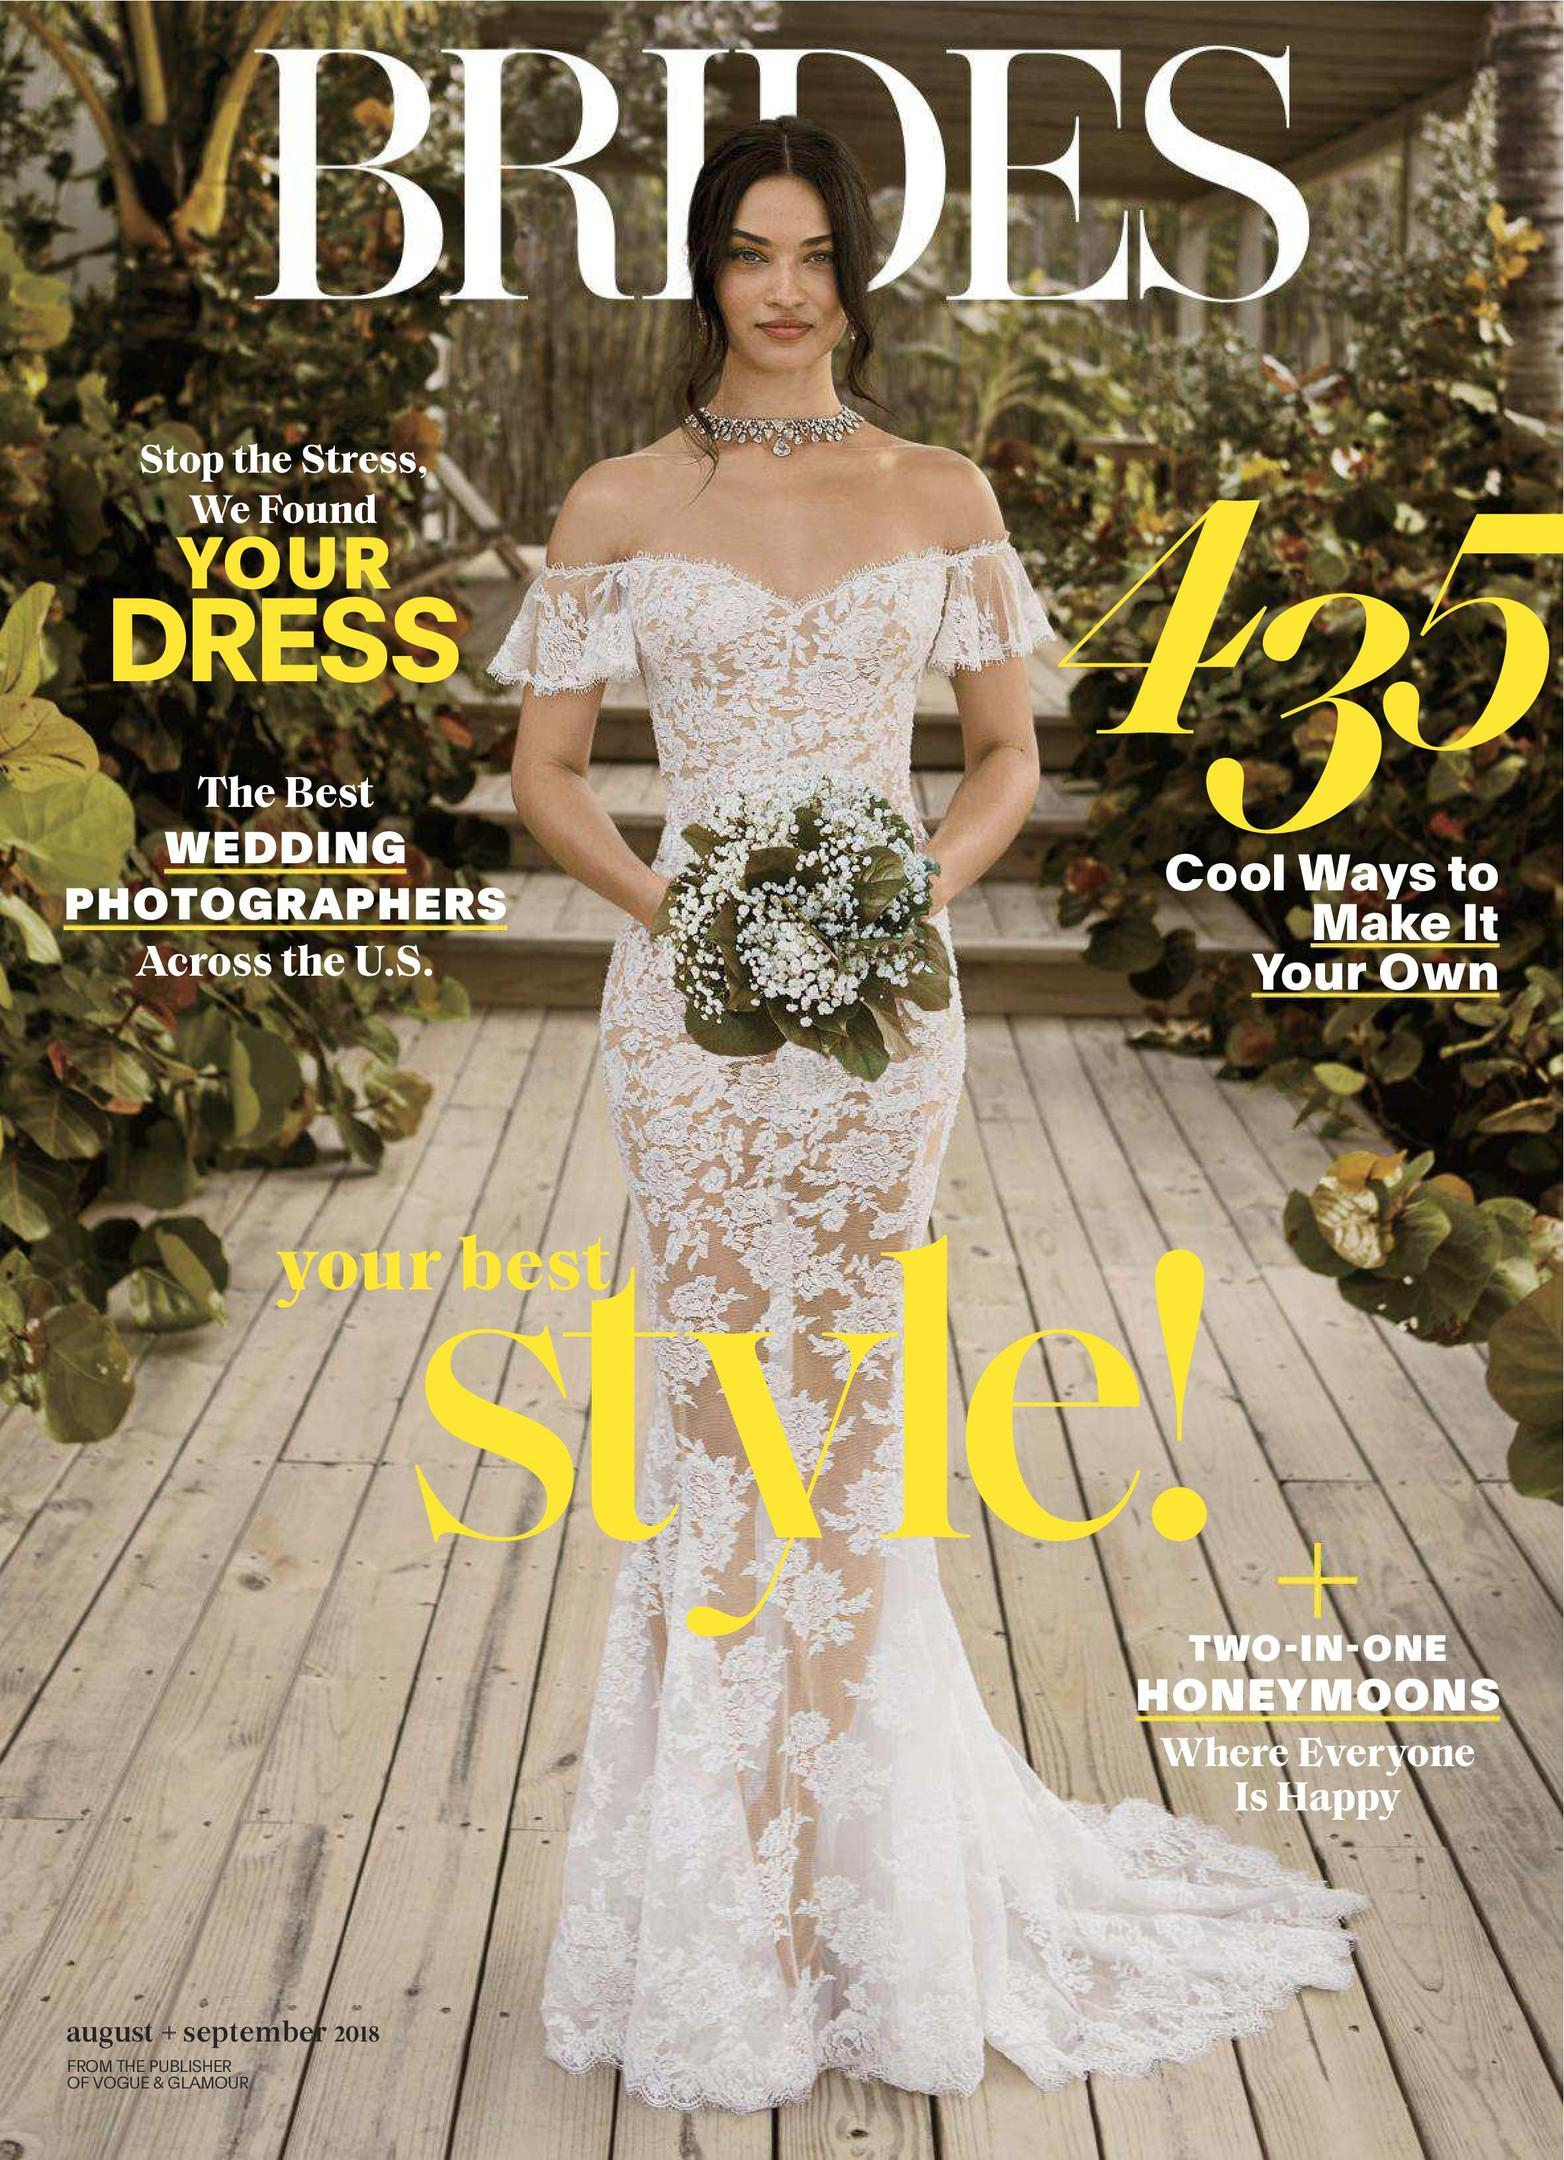 Wedding bride magazines 2017 pdf download free brides usa august september 2018 fandeluxe Choice Image